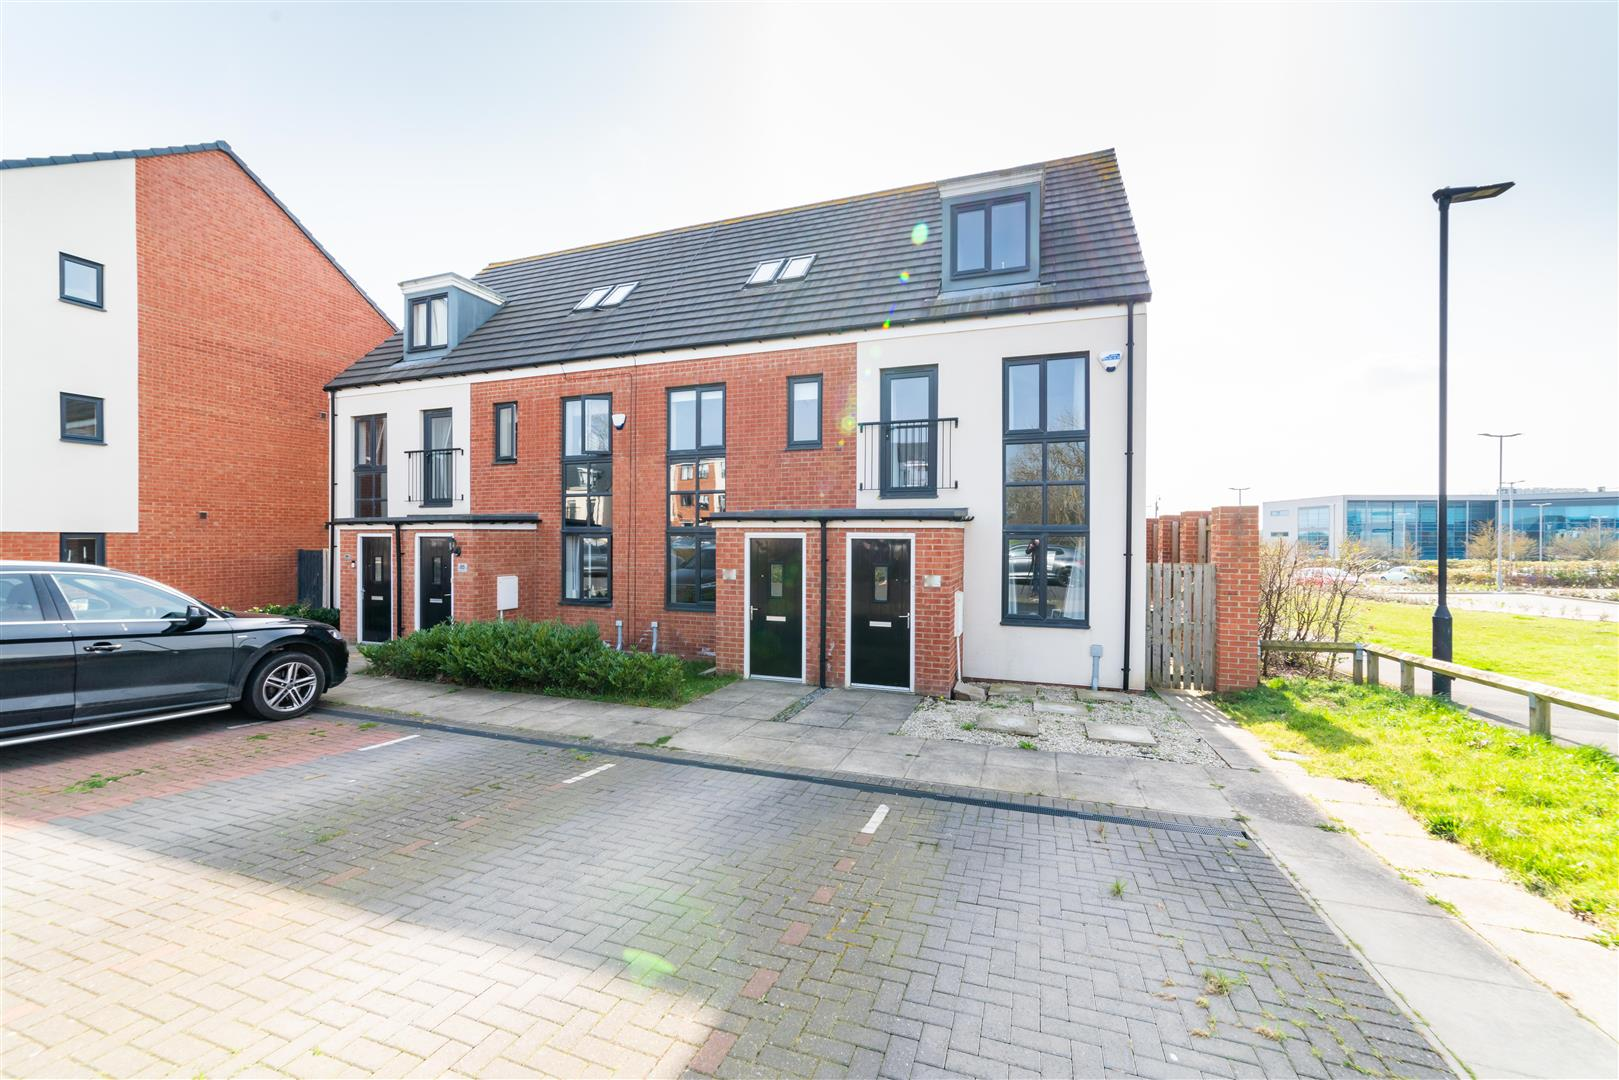 3 bed terraced house for sale in Elmwood Park Court, Great Park - Property Image 1